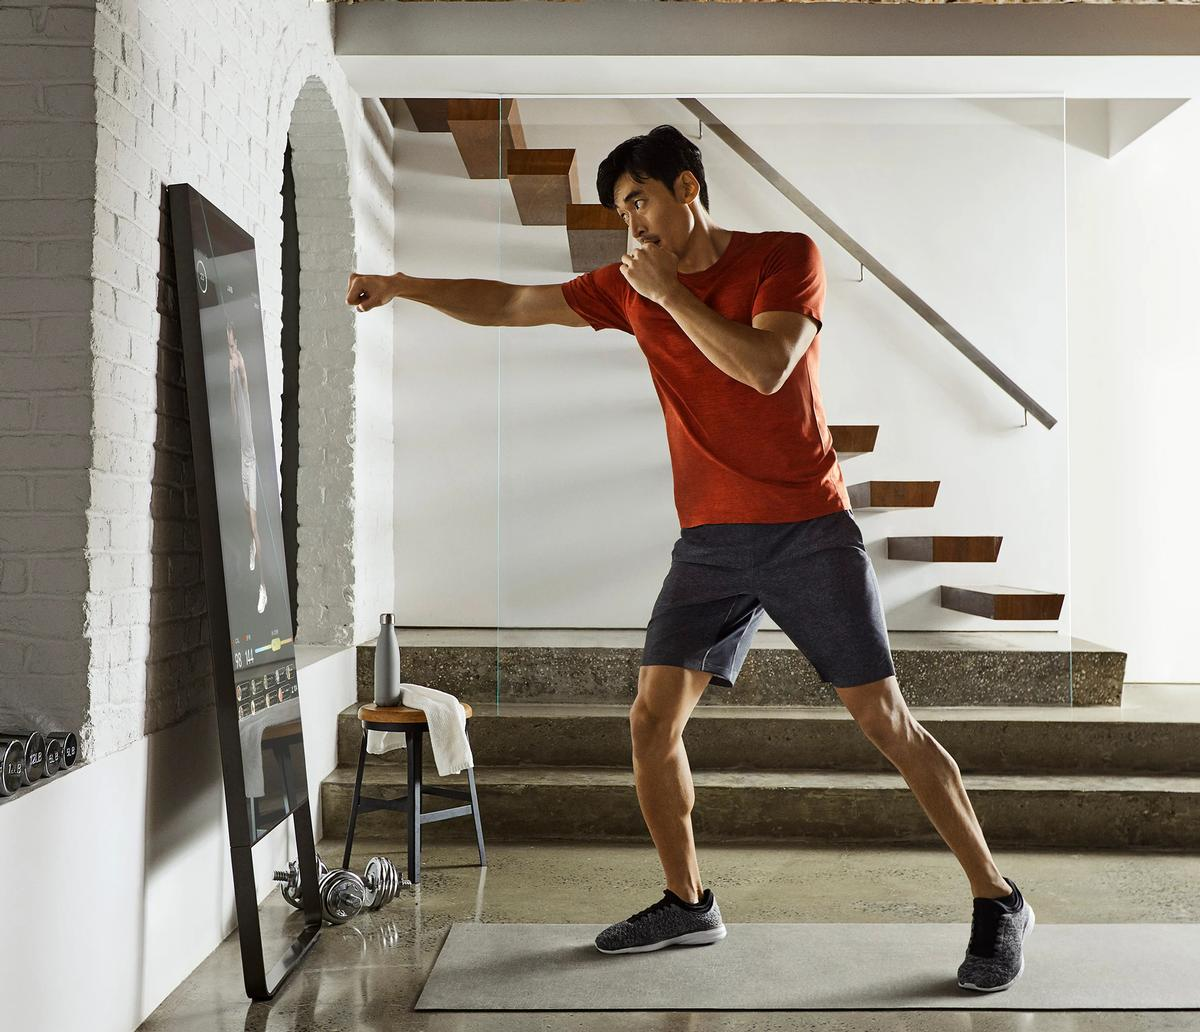 The deal comes as the COVID-19 lockdowns have caused an explosion in demand for at-home fitness globally / Mirror